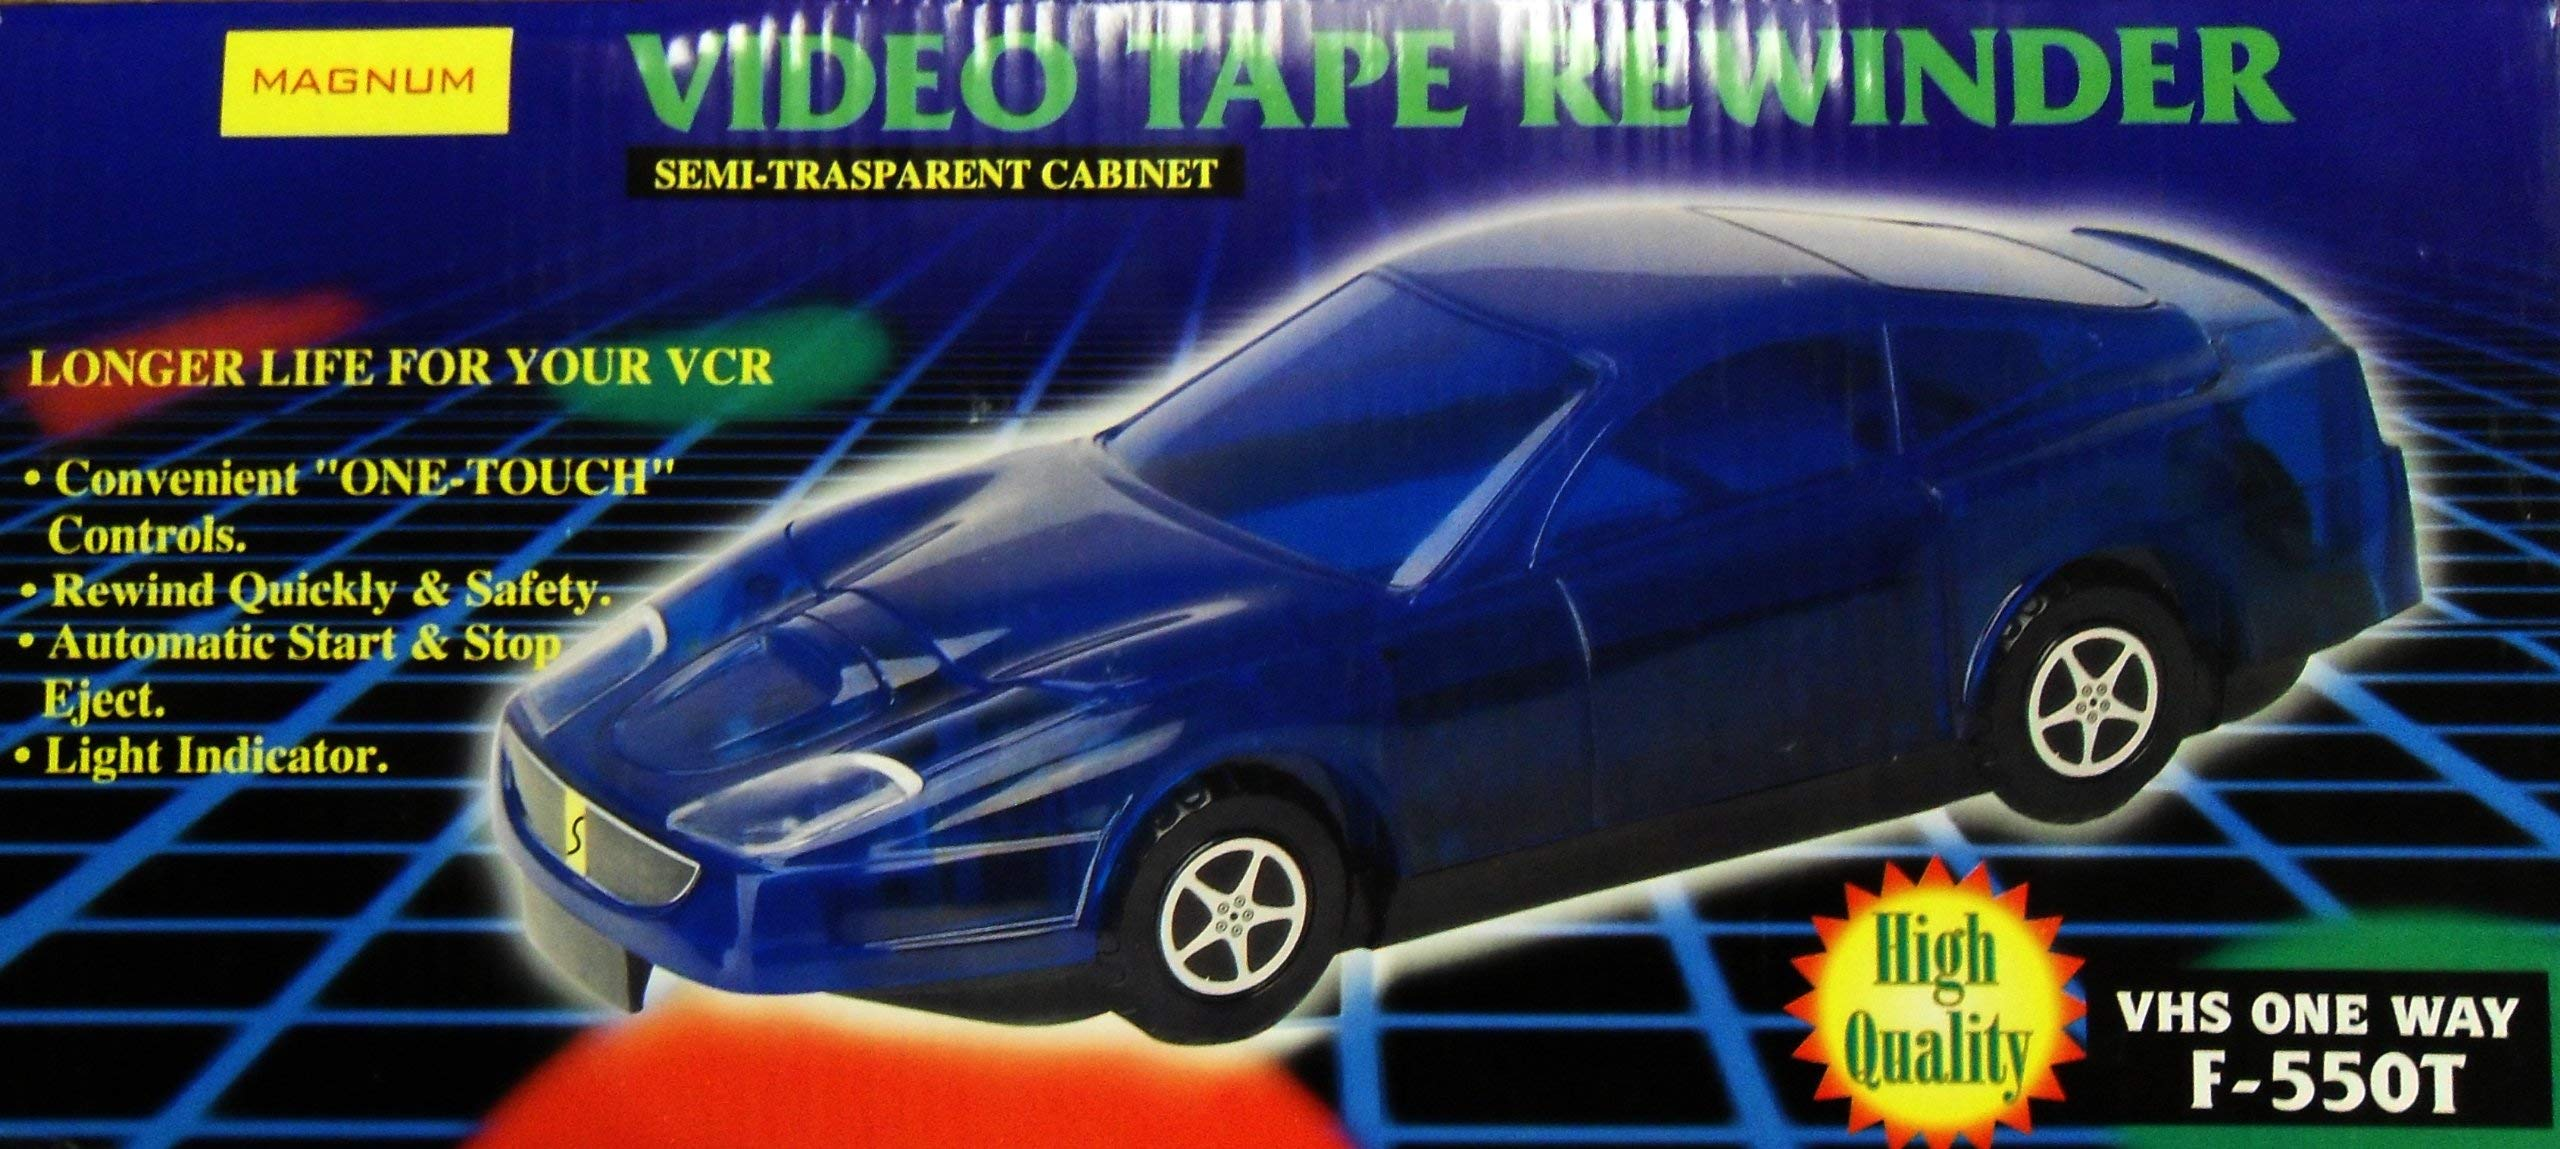 MAGNUM F550T VHS Video Tape Rewinder (Color Green)